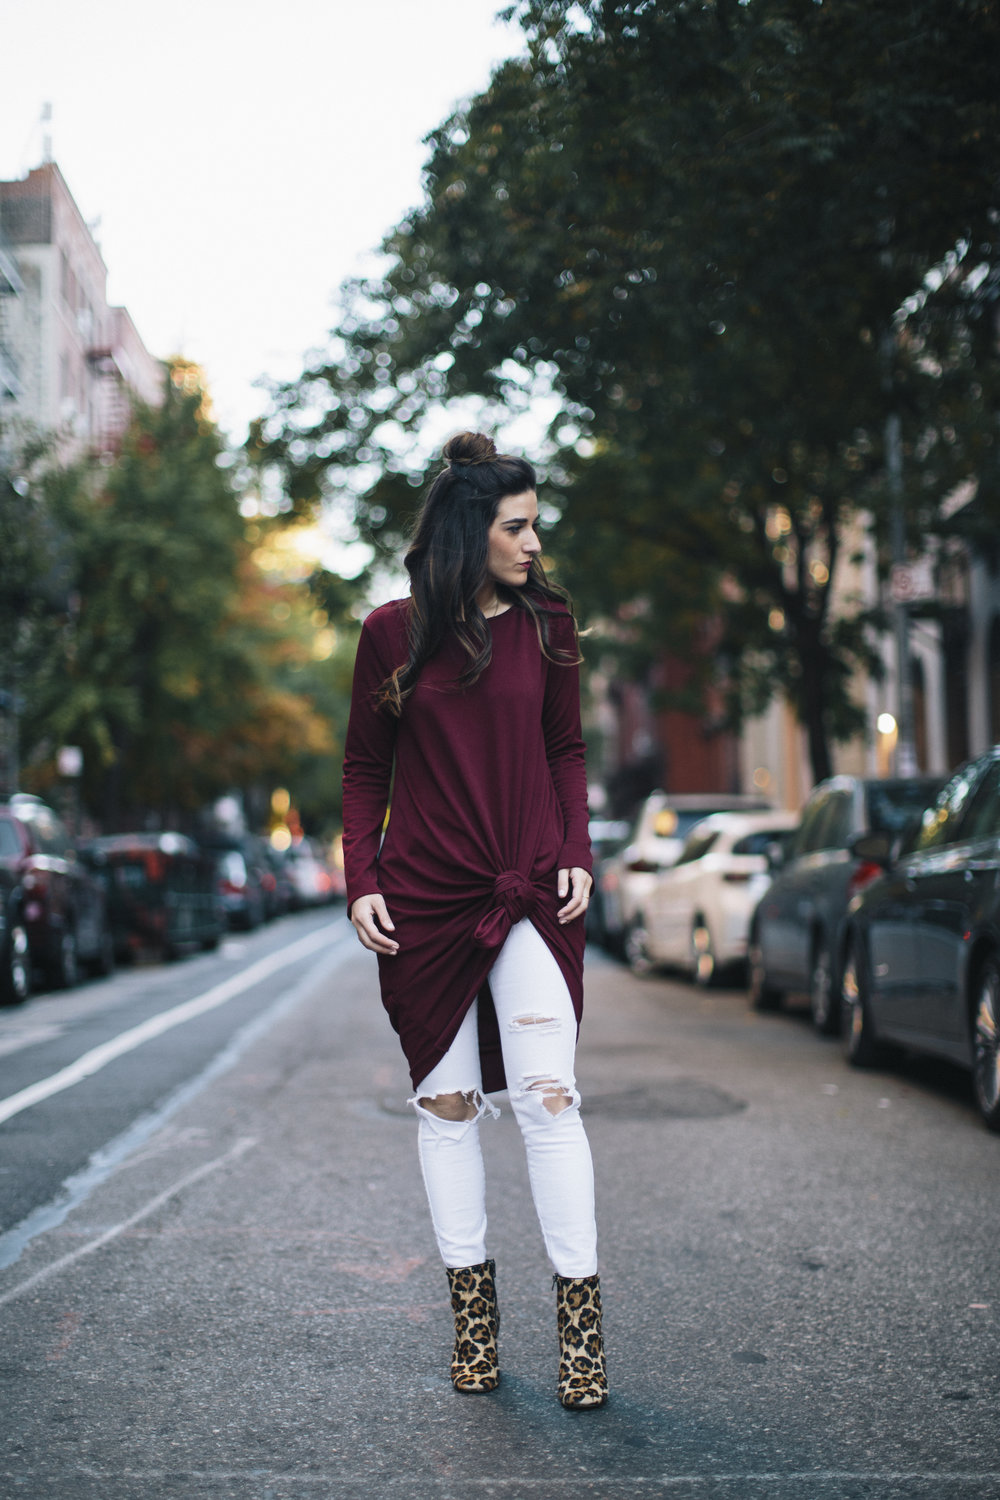 Knotted Dress + Ripped White Jeans 4 Ways To Build Connections Louboutins & Love Fashion Blog Esther Santer NYC Street Style Blogger Outfit OOTD Trendy Red Maroon Burgundy Winter Color Leopard Coach Shoes Booties Pants Girl Women Topknot Bun Hair Wear.jpg